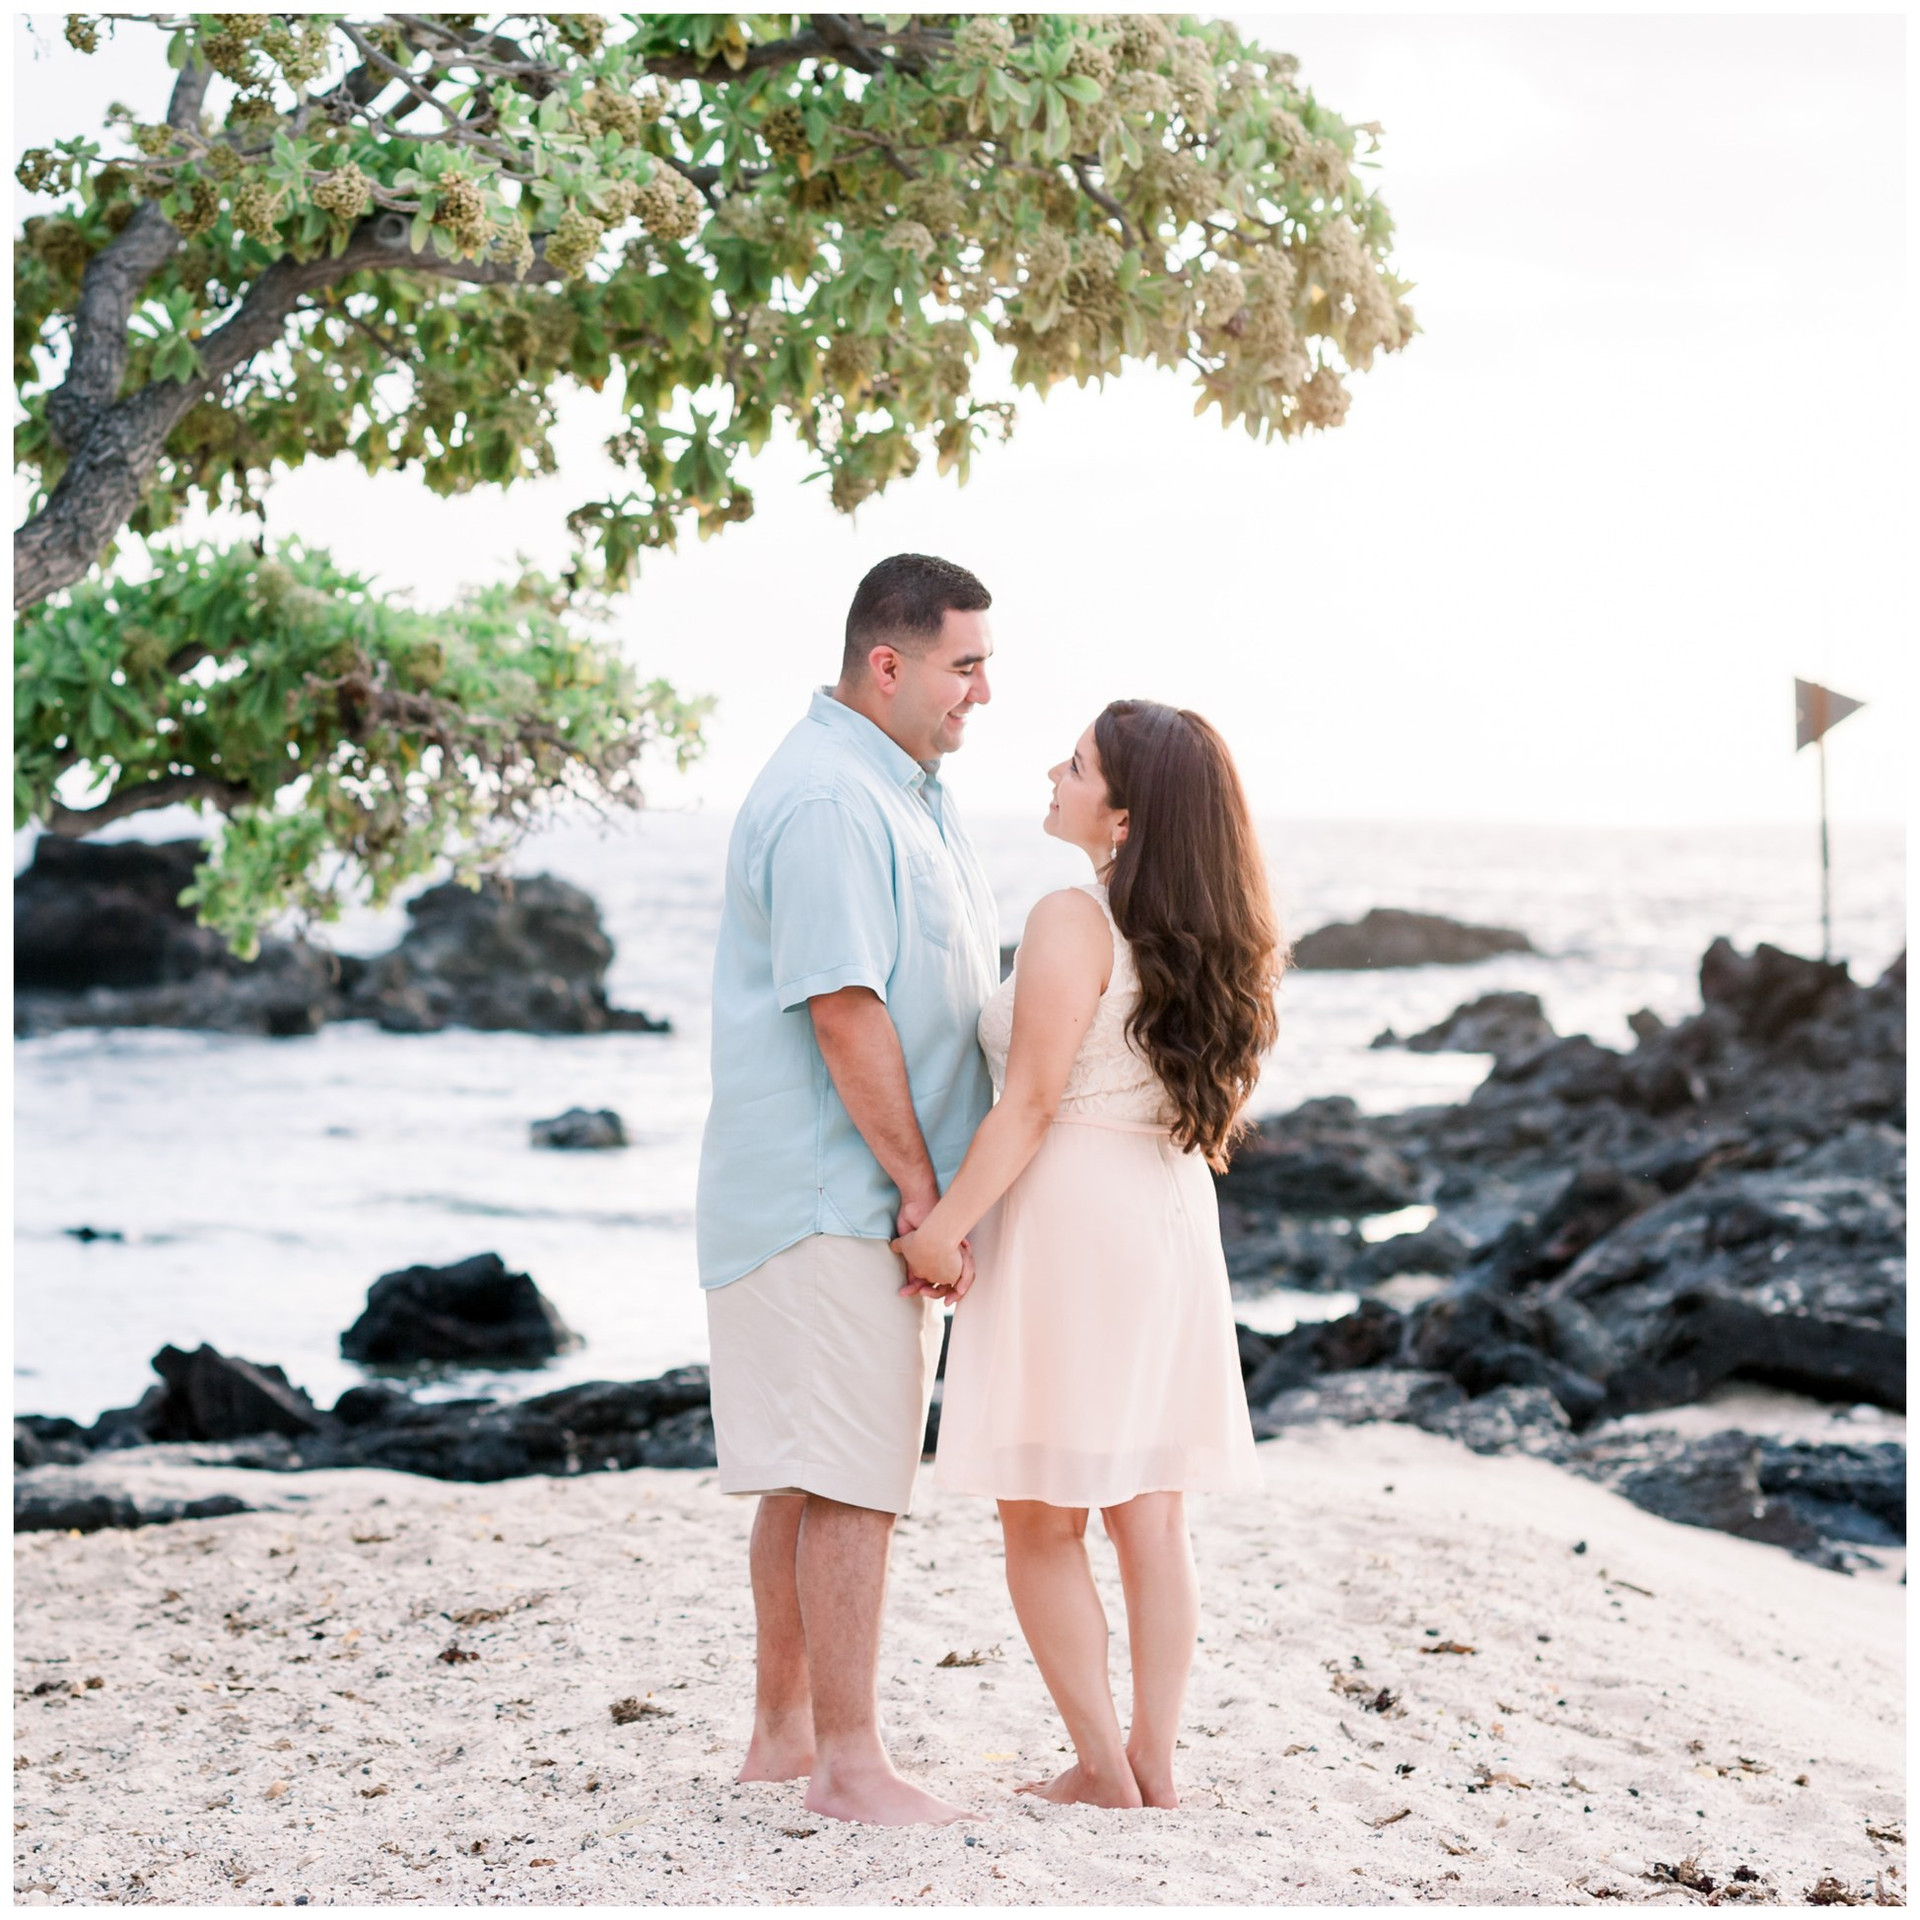 Hawaii Engagement Photographers 16a.jpg